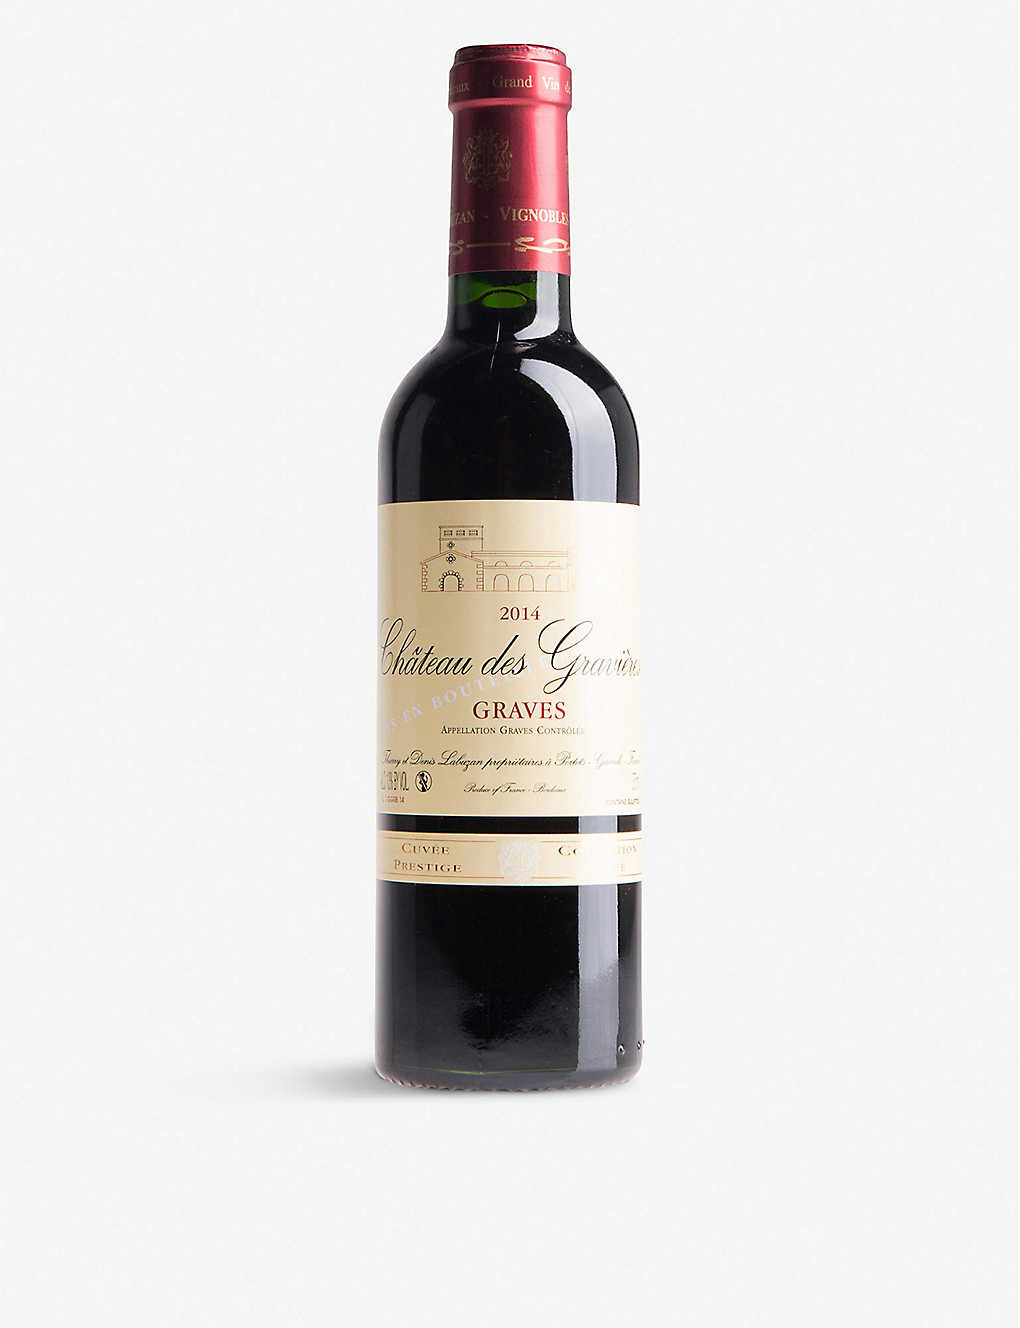 FRANCE: Chateau Des Gravieres Collection Prestige Graves 375ml